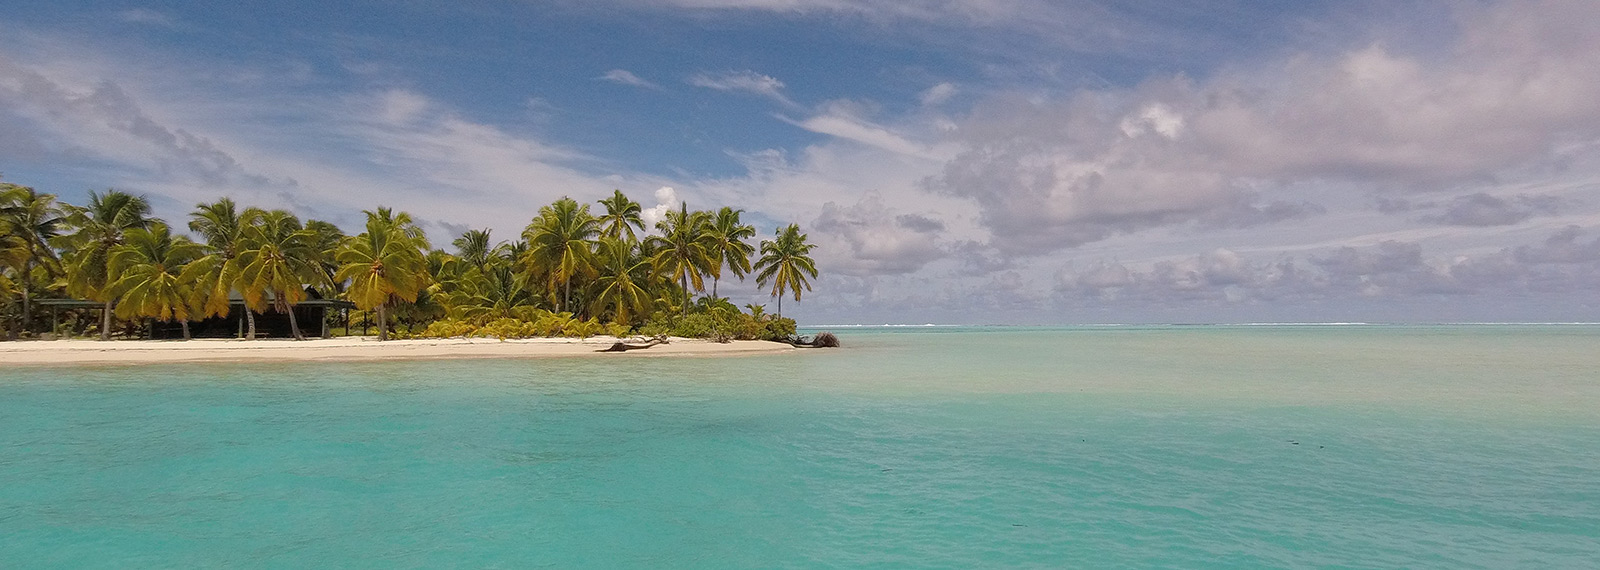 Stay and relax in Cook Islands - Cook Islands travel guide